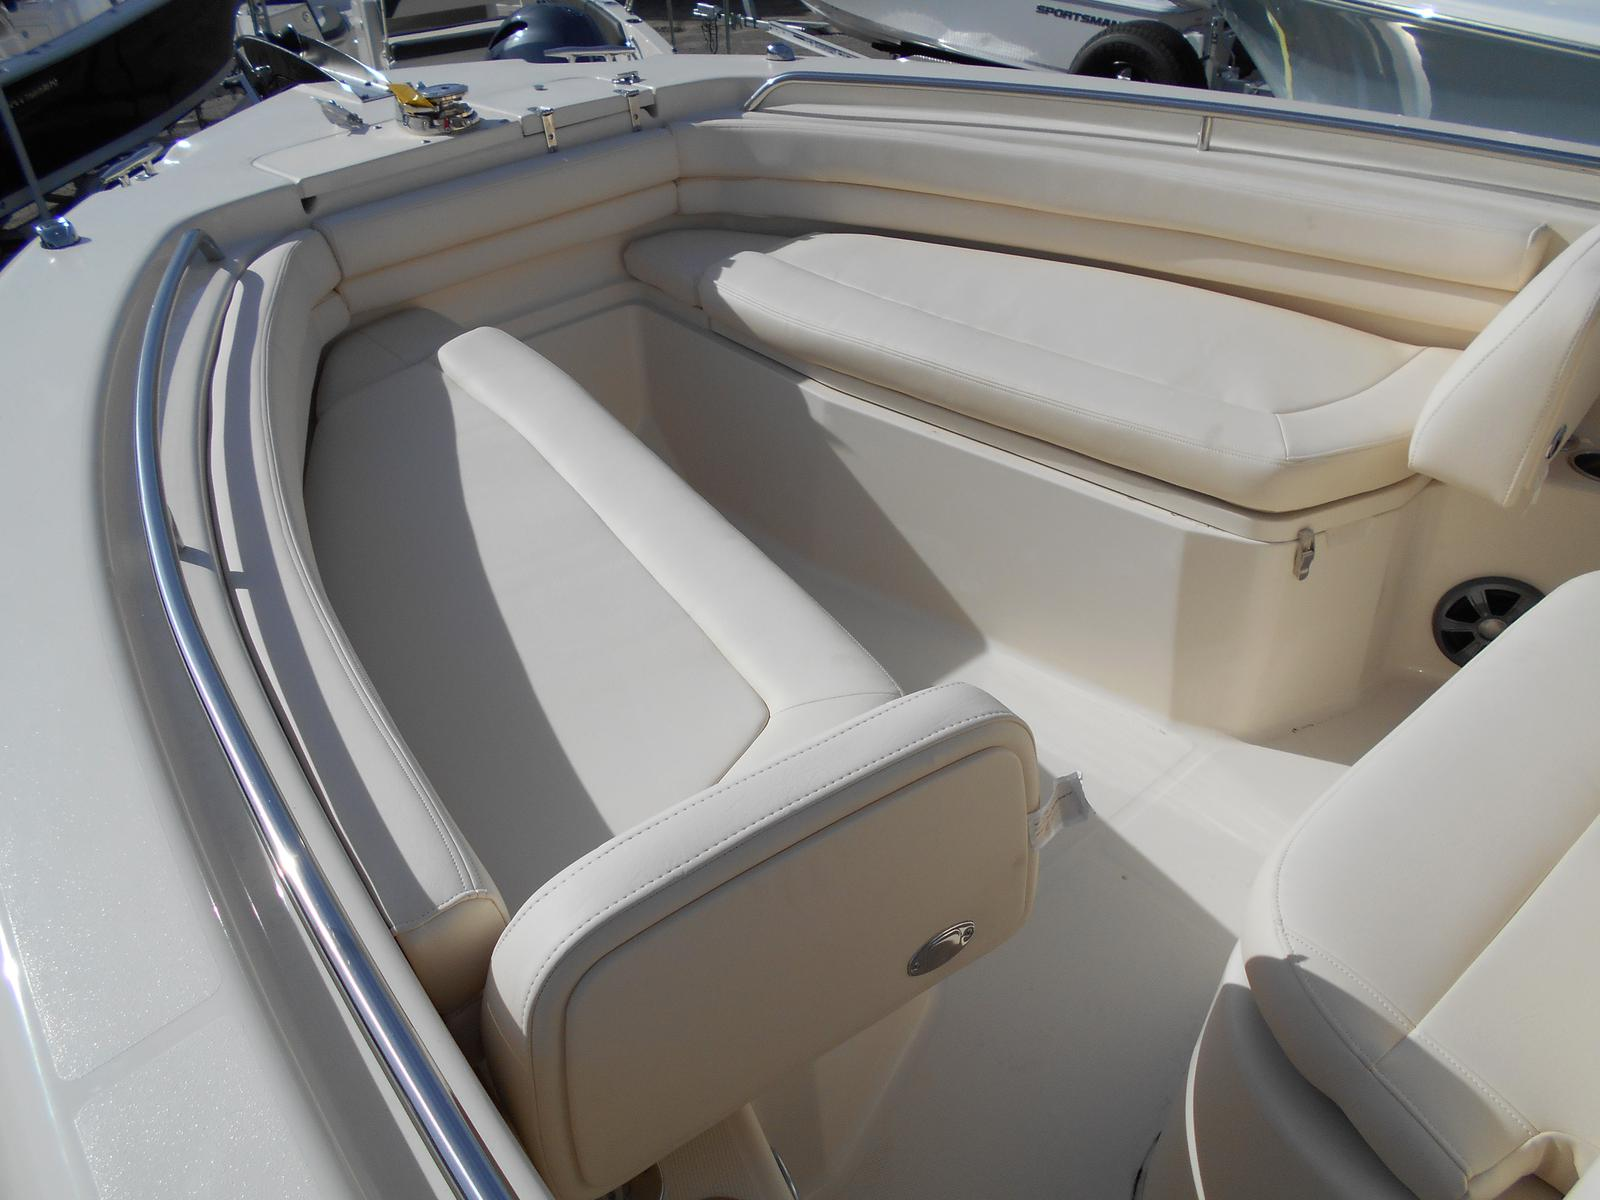 2019 Grady-White 257 Fisherman for sale in West Columbia, SC